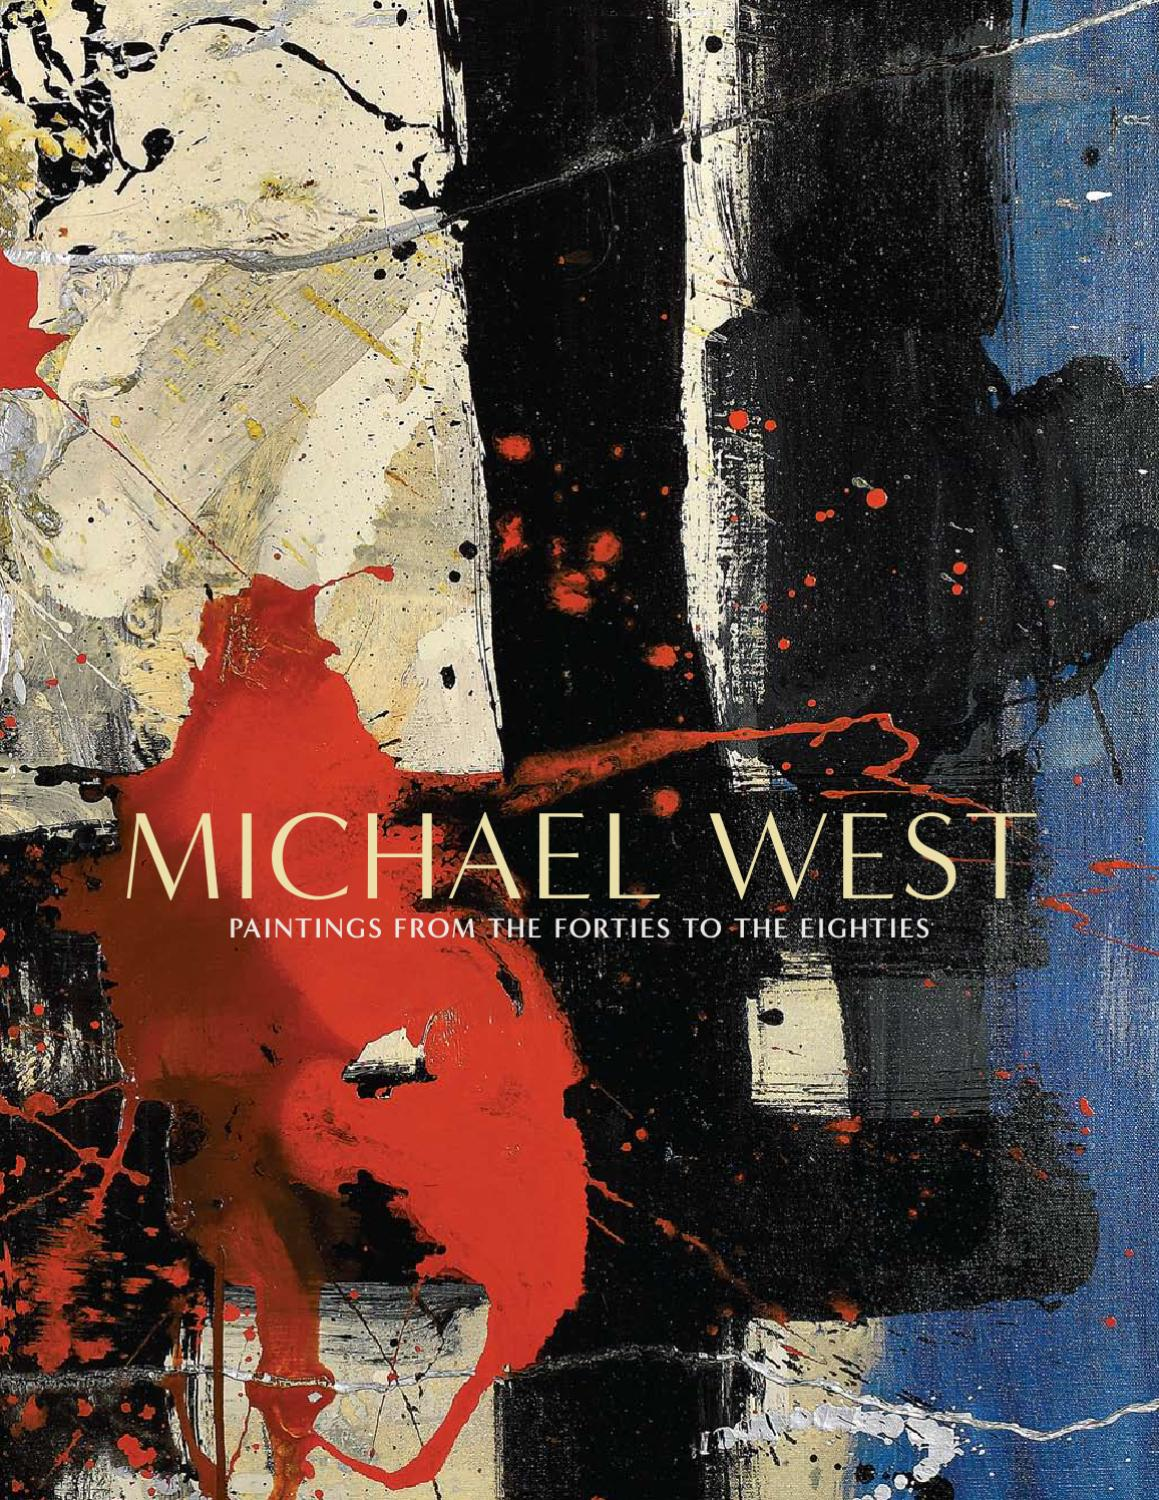 Michael West Paintings From The Forties To The Eighties